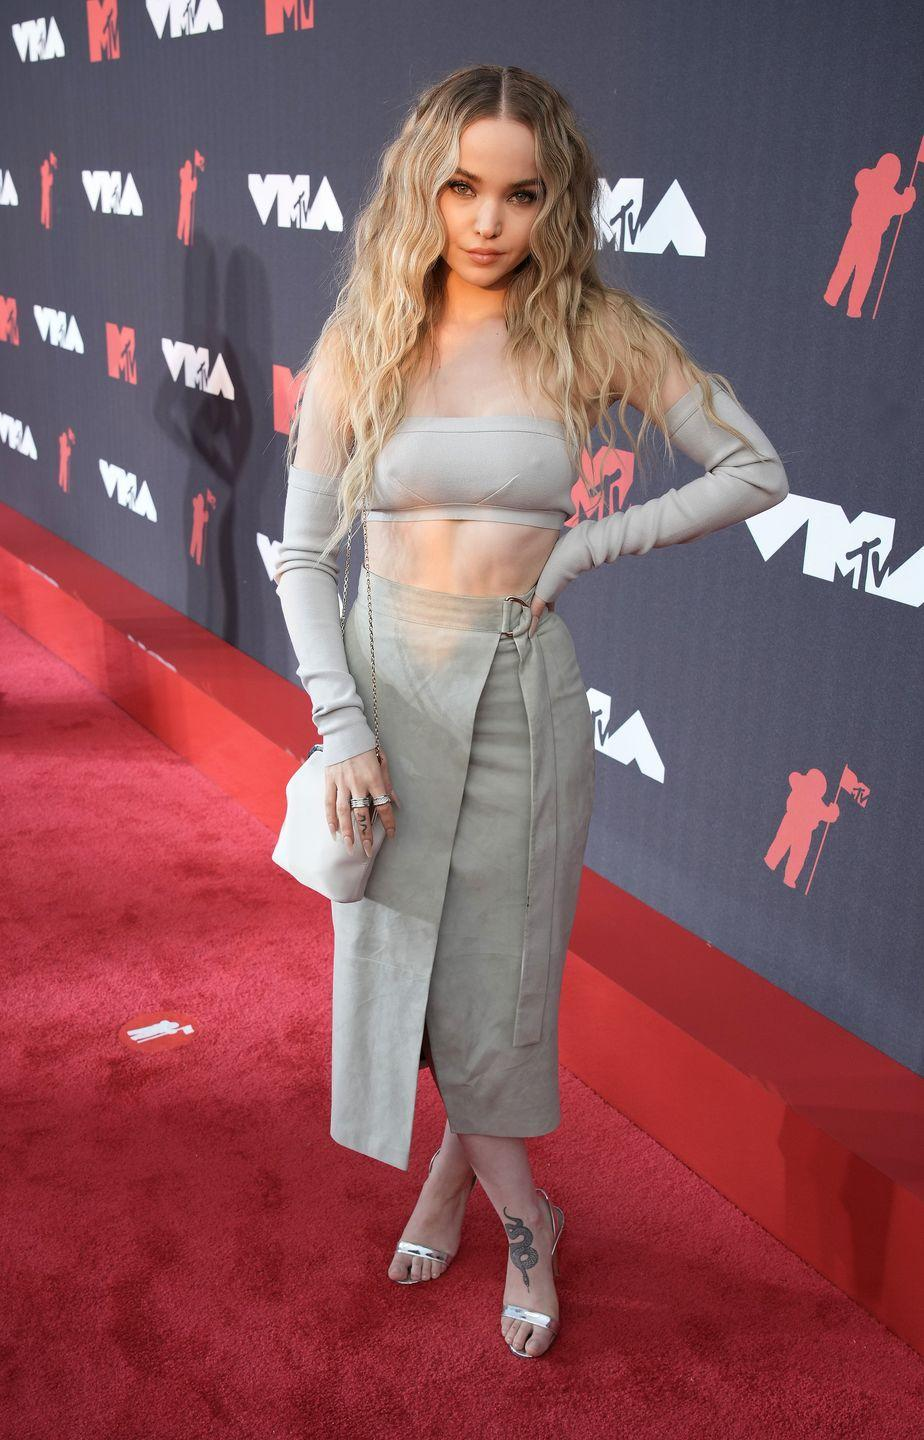 <p>Dove Cameron appeared on the carpet in an all-gray ensemble featuring a bandeau top, midi skirt, gloves and a matching off-the-shoulder pouch bag. She paired the look with silver heels. </p>